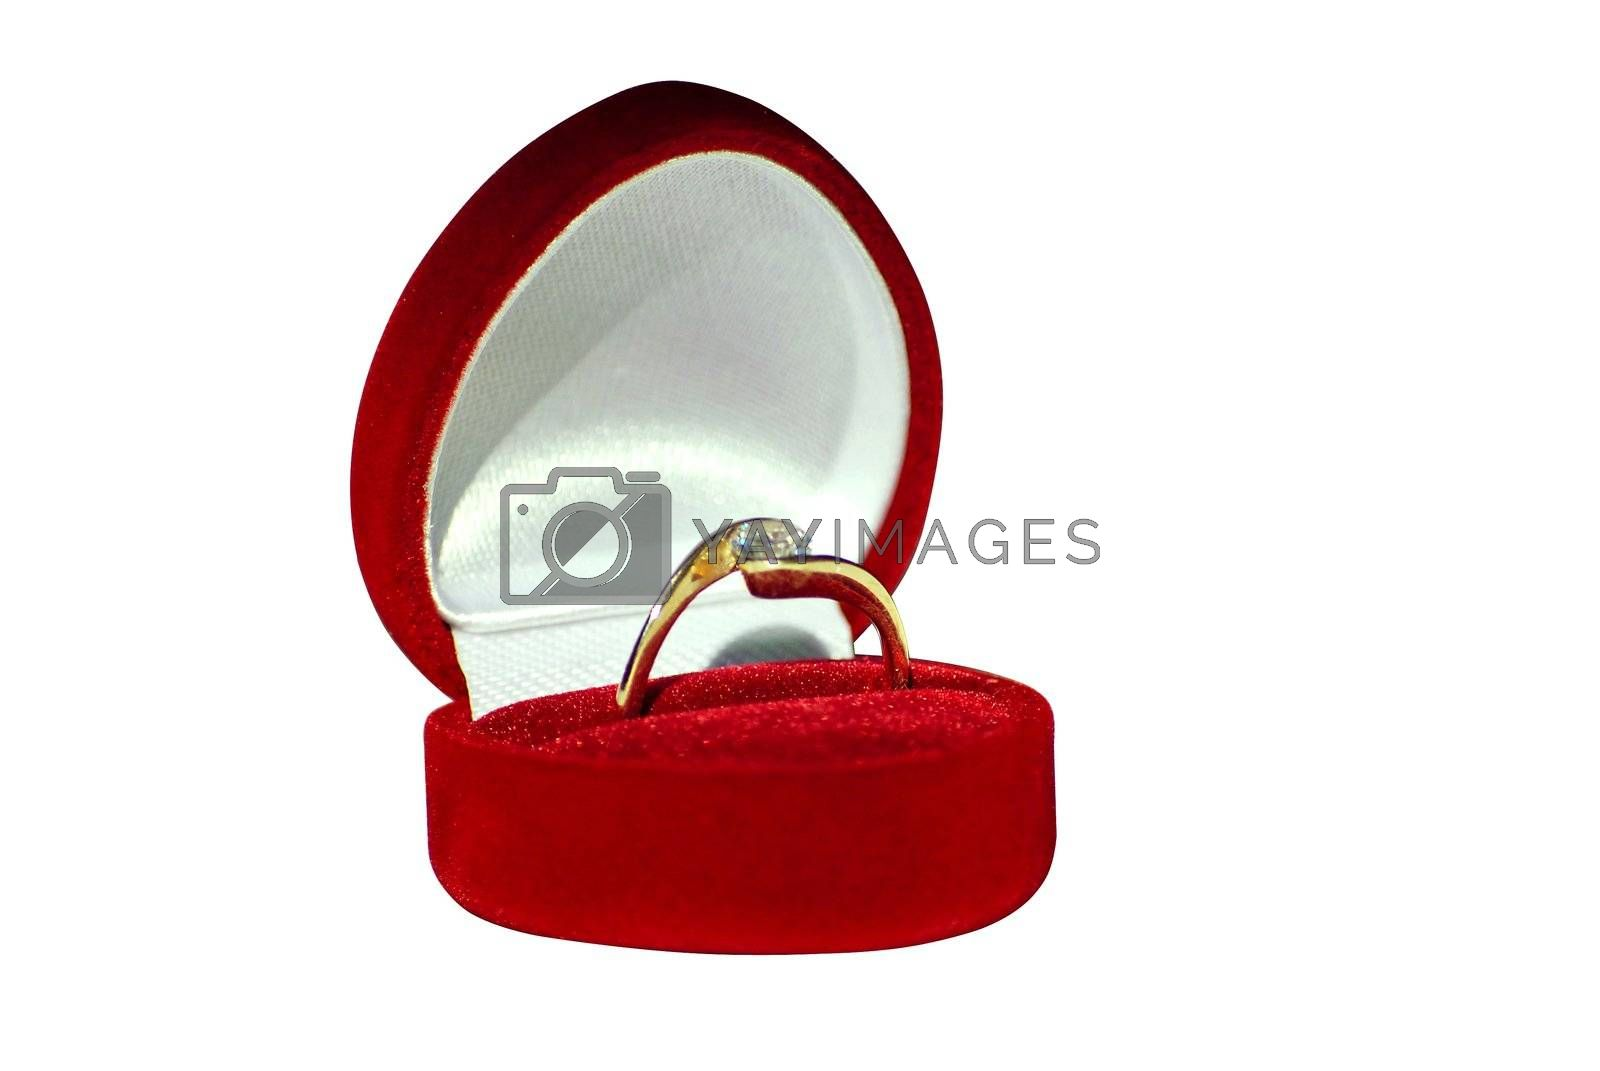 engagement ring in red box isolated on white background